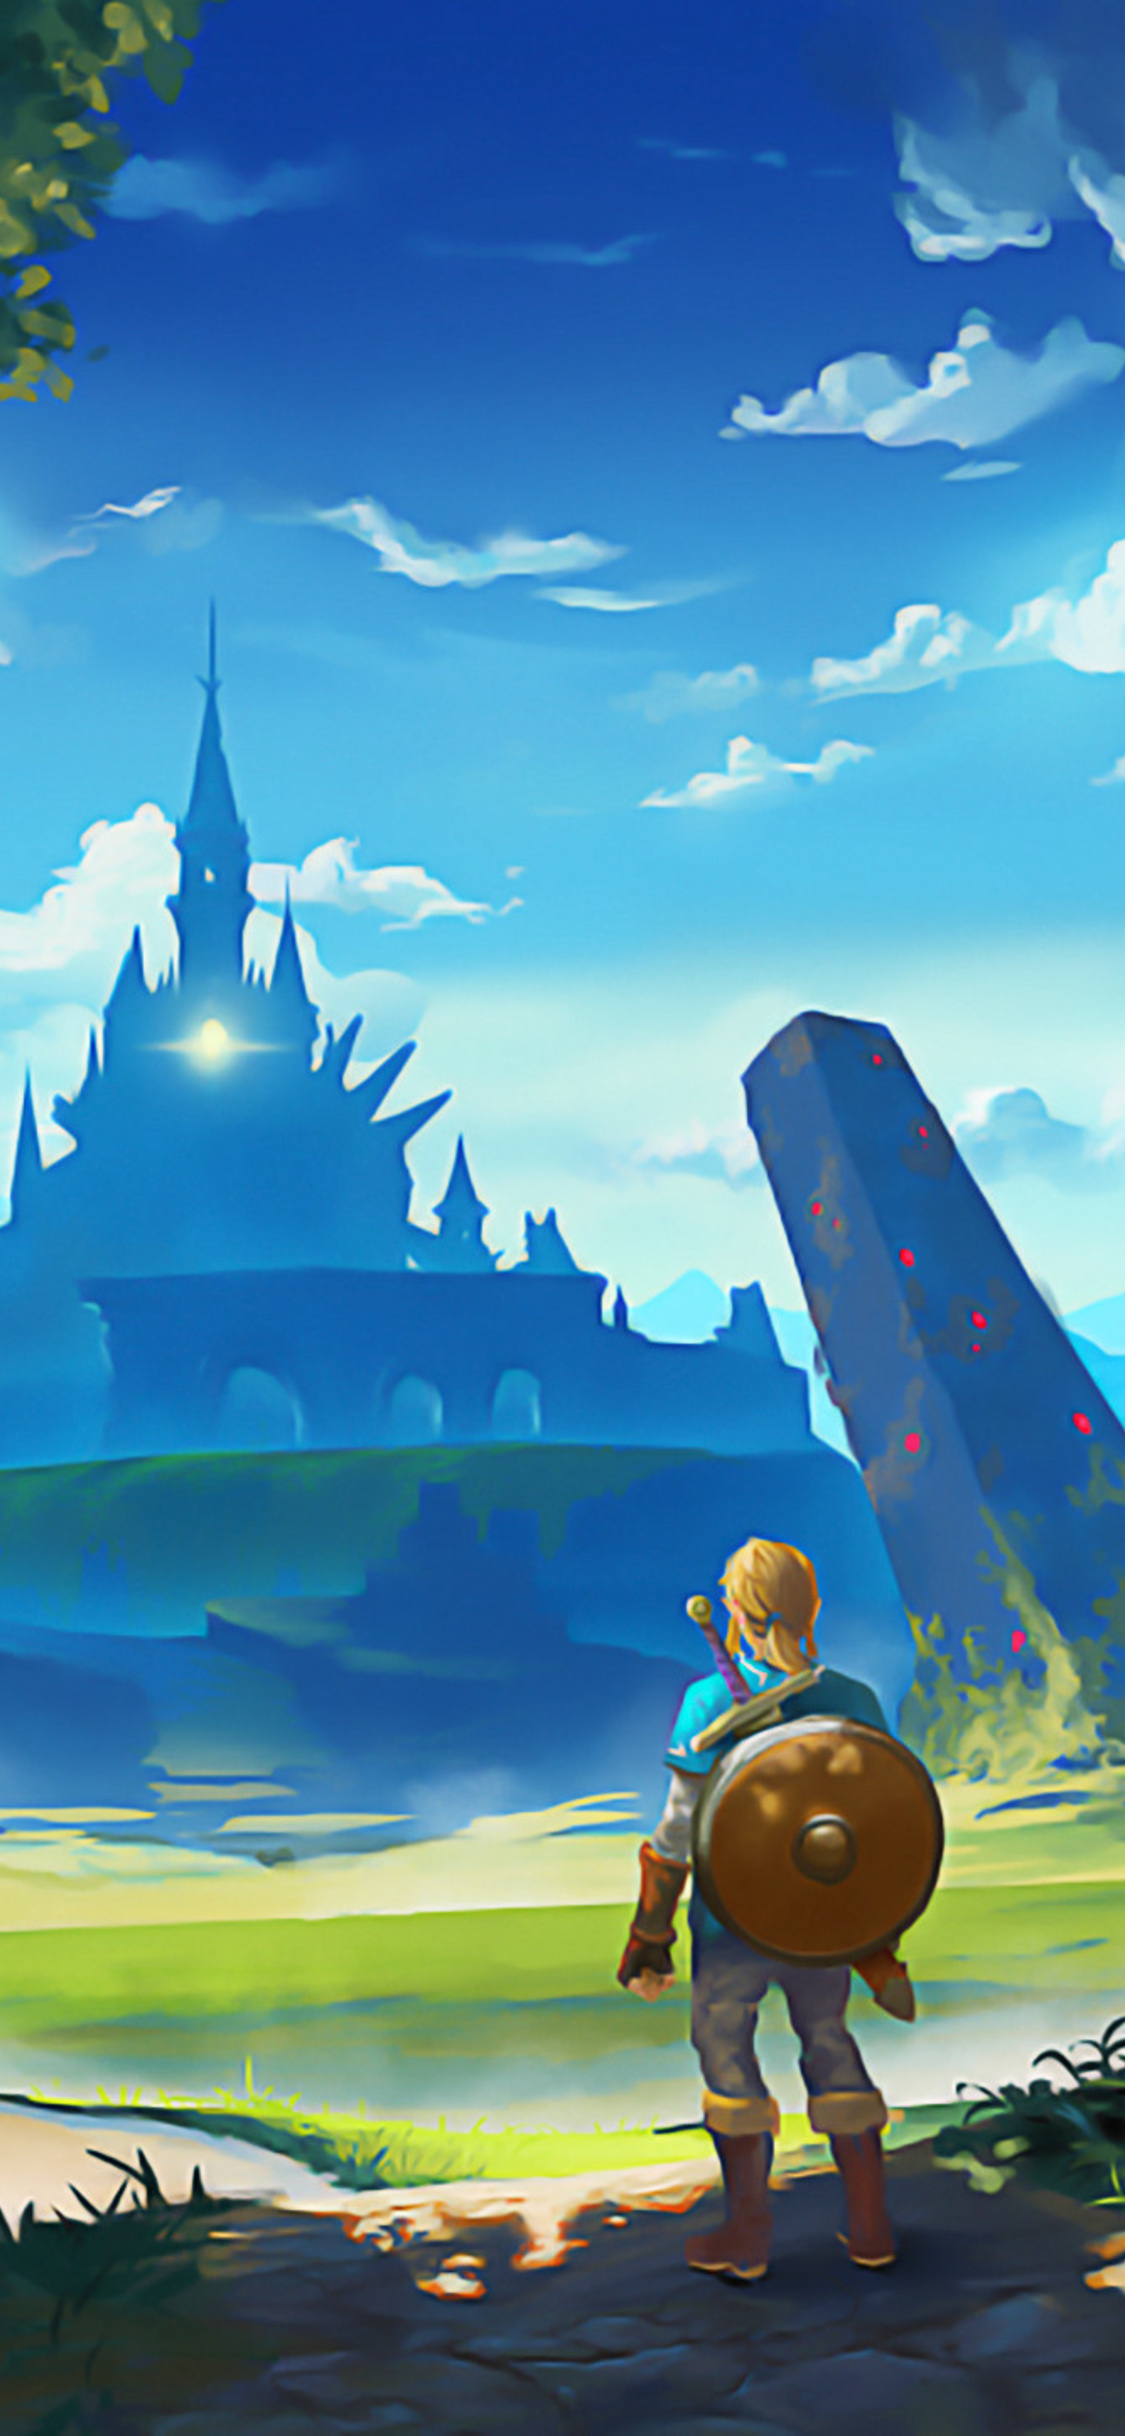 1125x2436 The Legend Of Zelda Breath Of The Wild Artworks Iphone